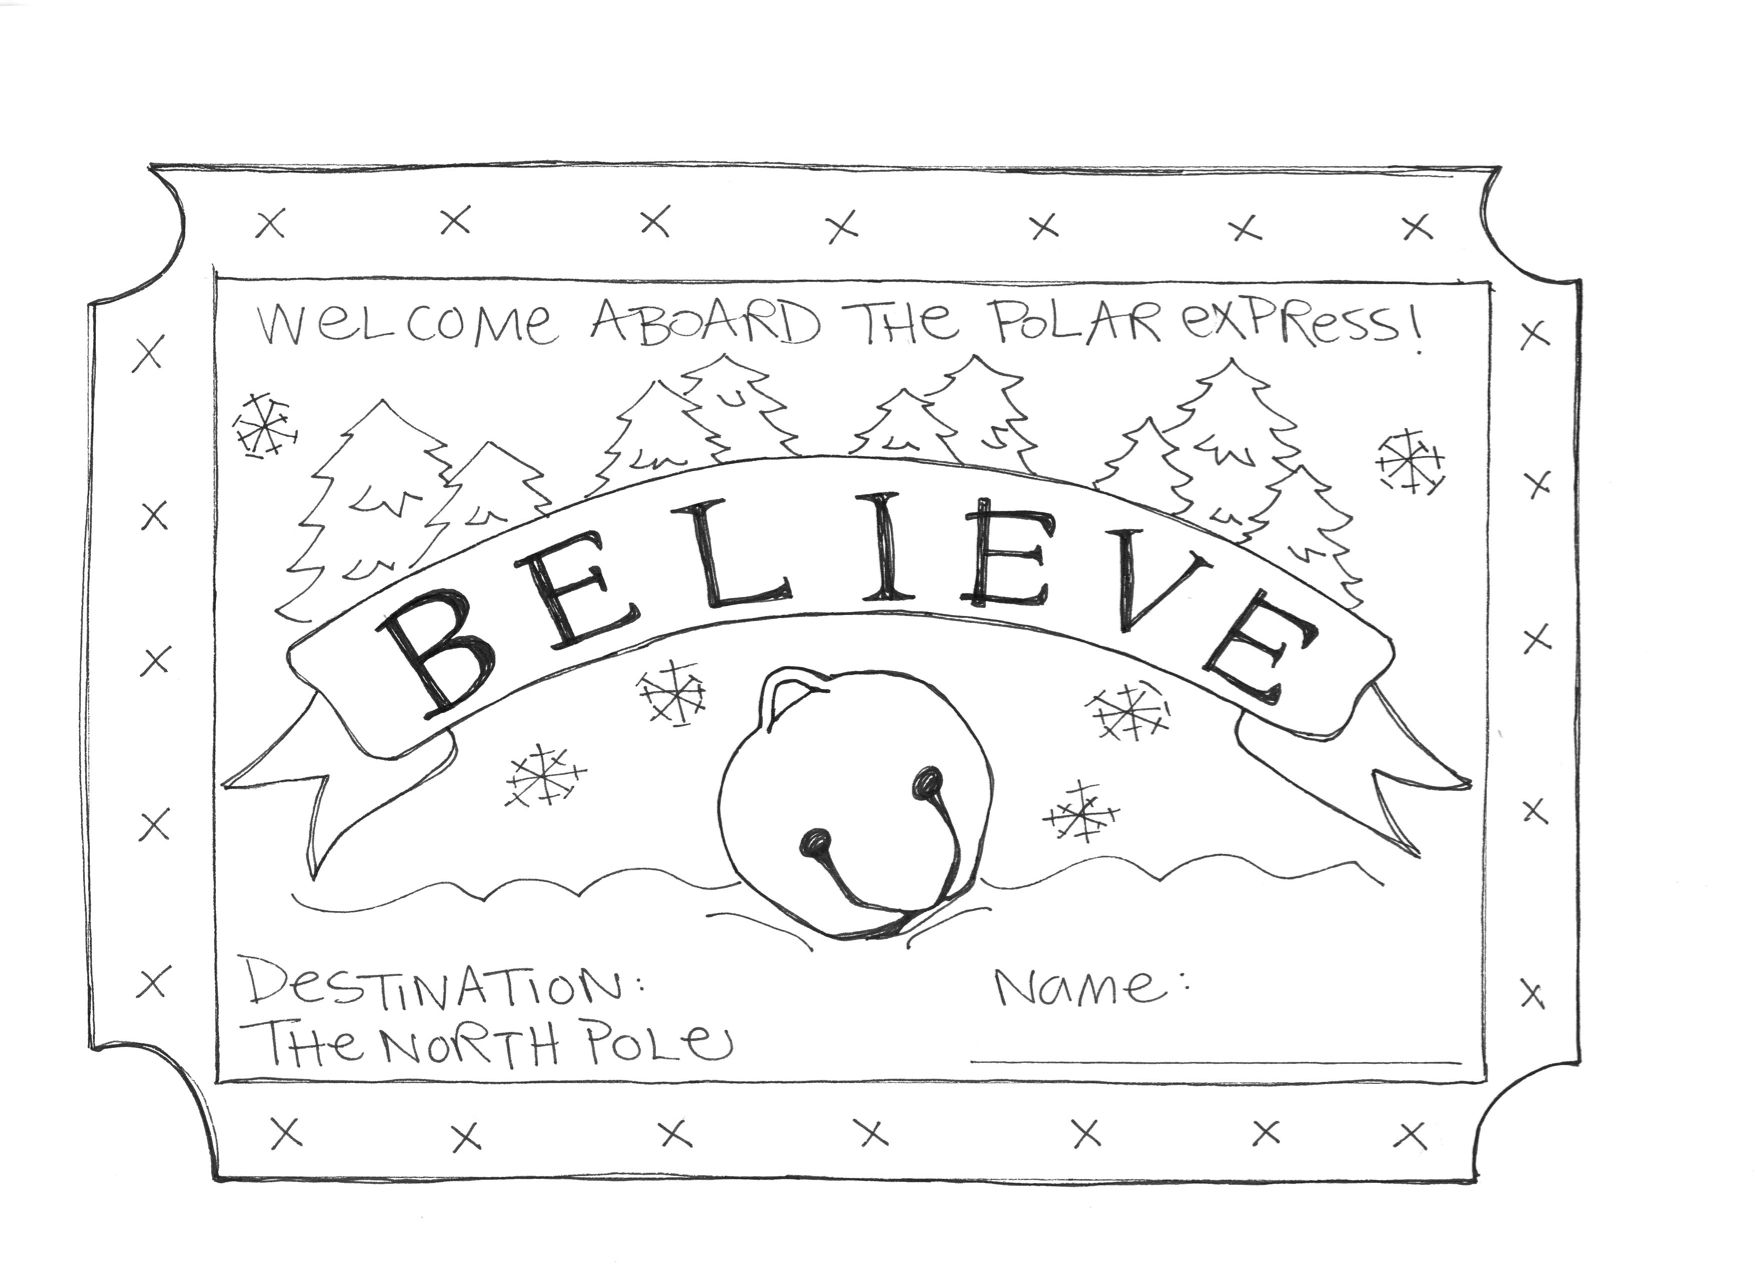 Made This Coloring Sheet For A Polar Express Themed